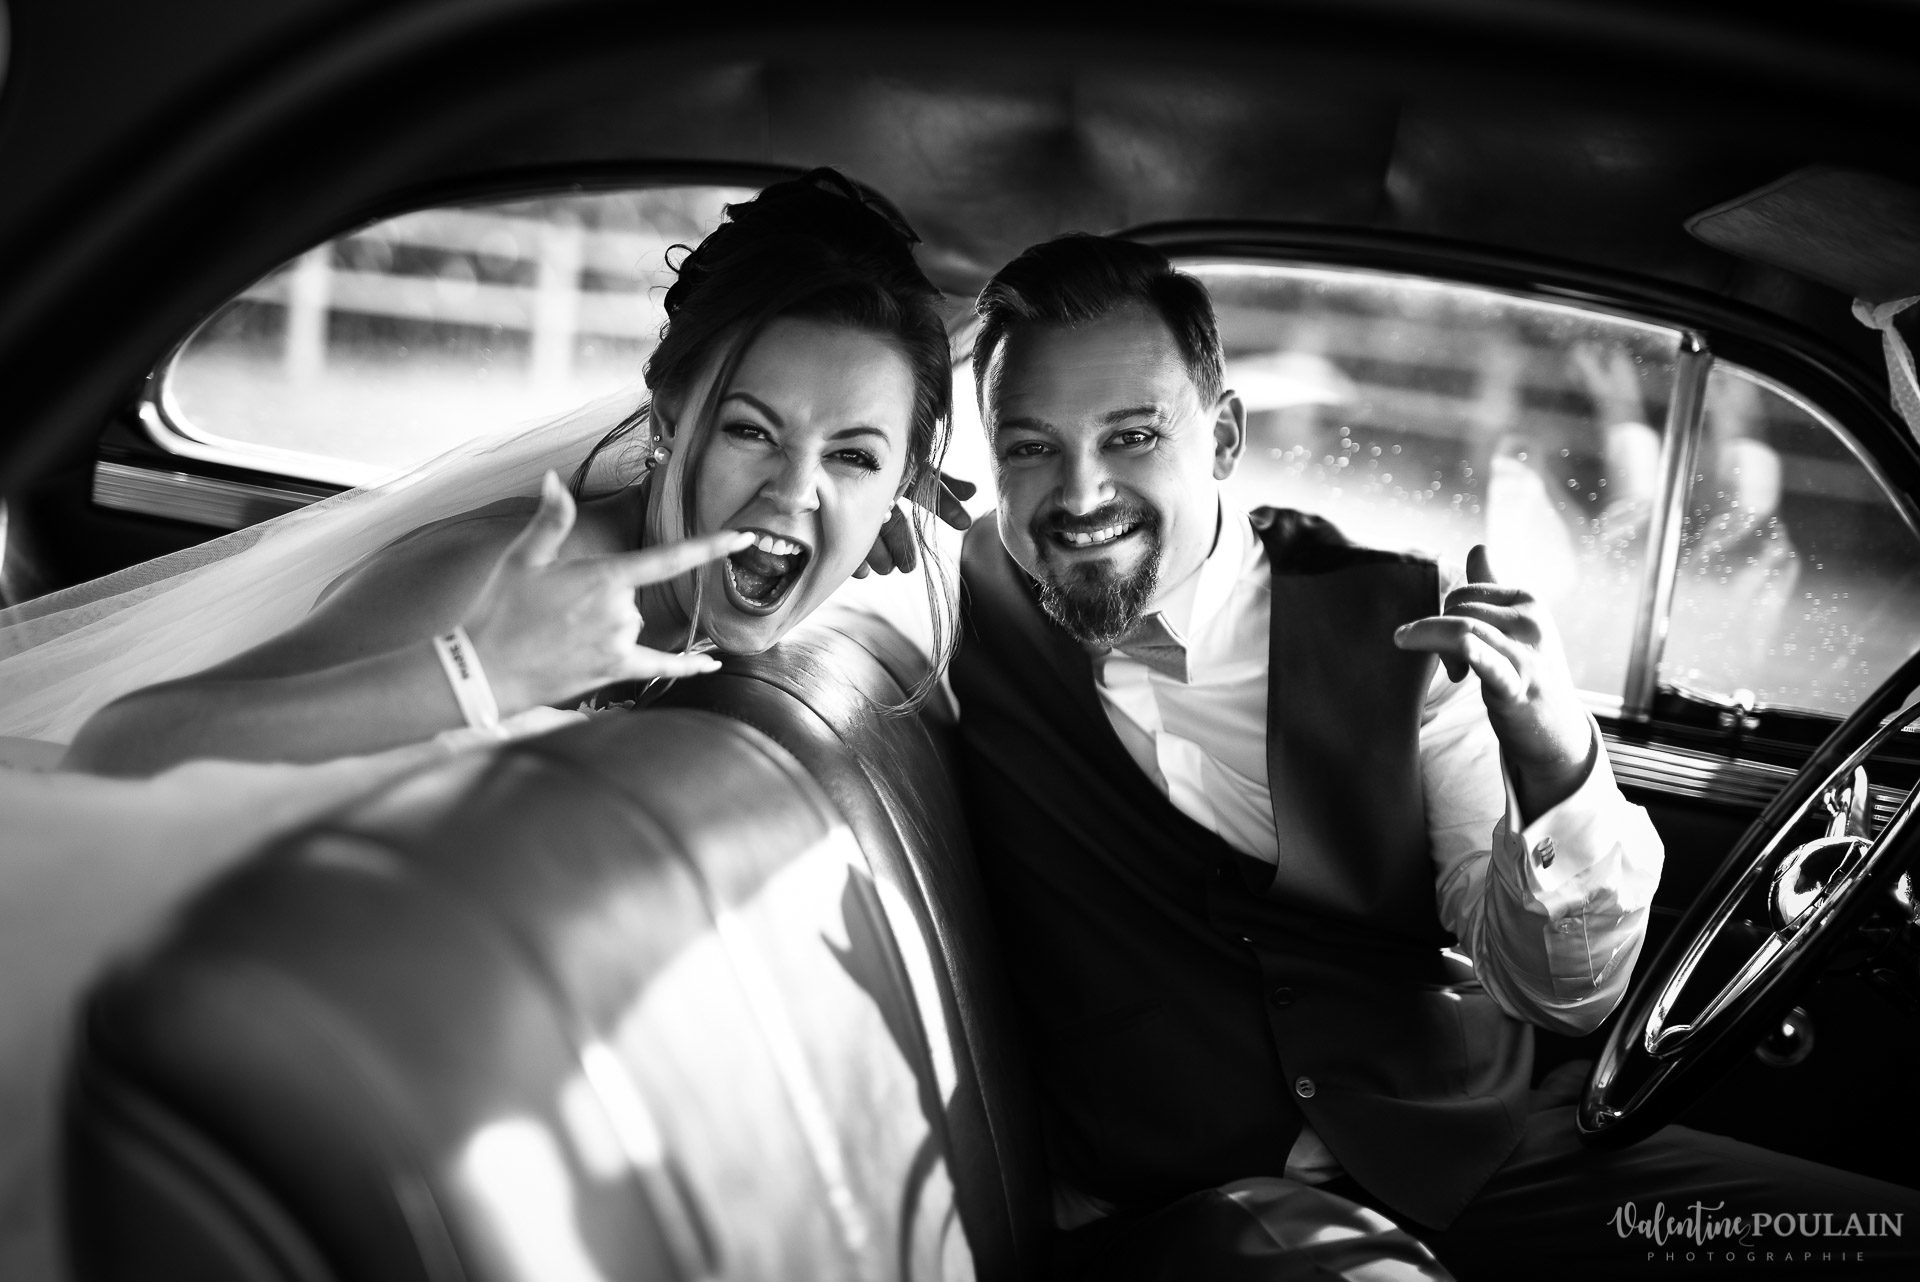 Mariage cool ferme weyerbach - Valentine Poulain voiture funky